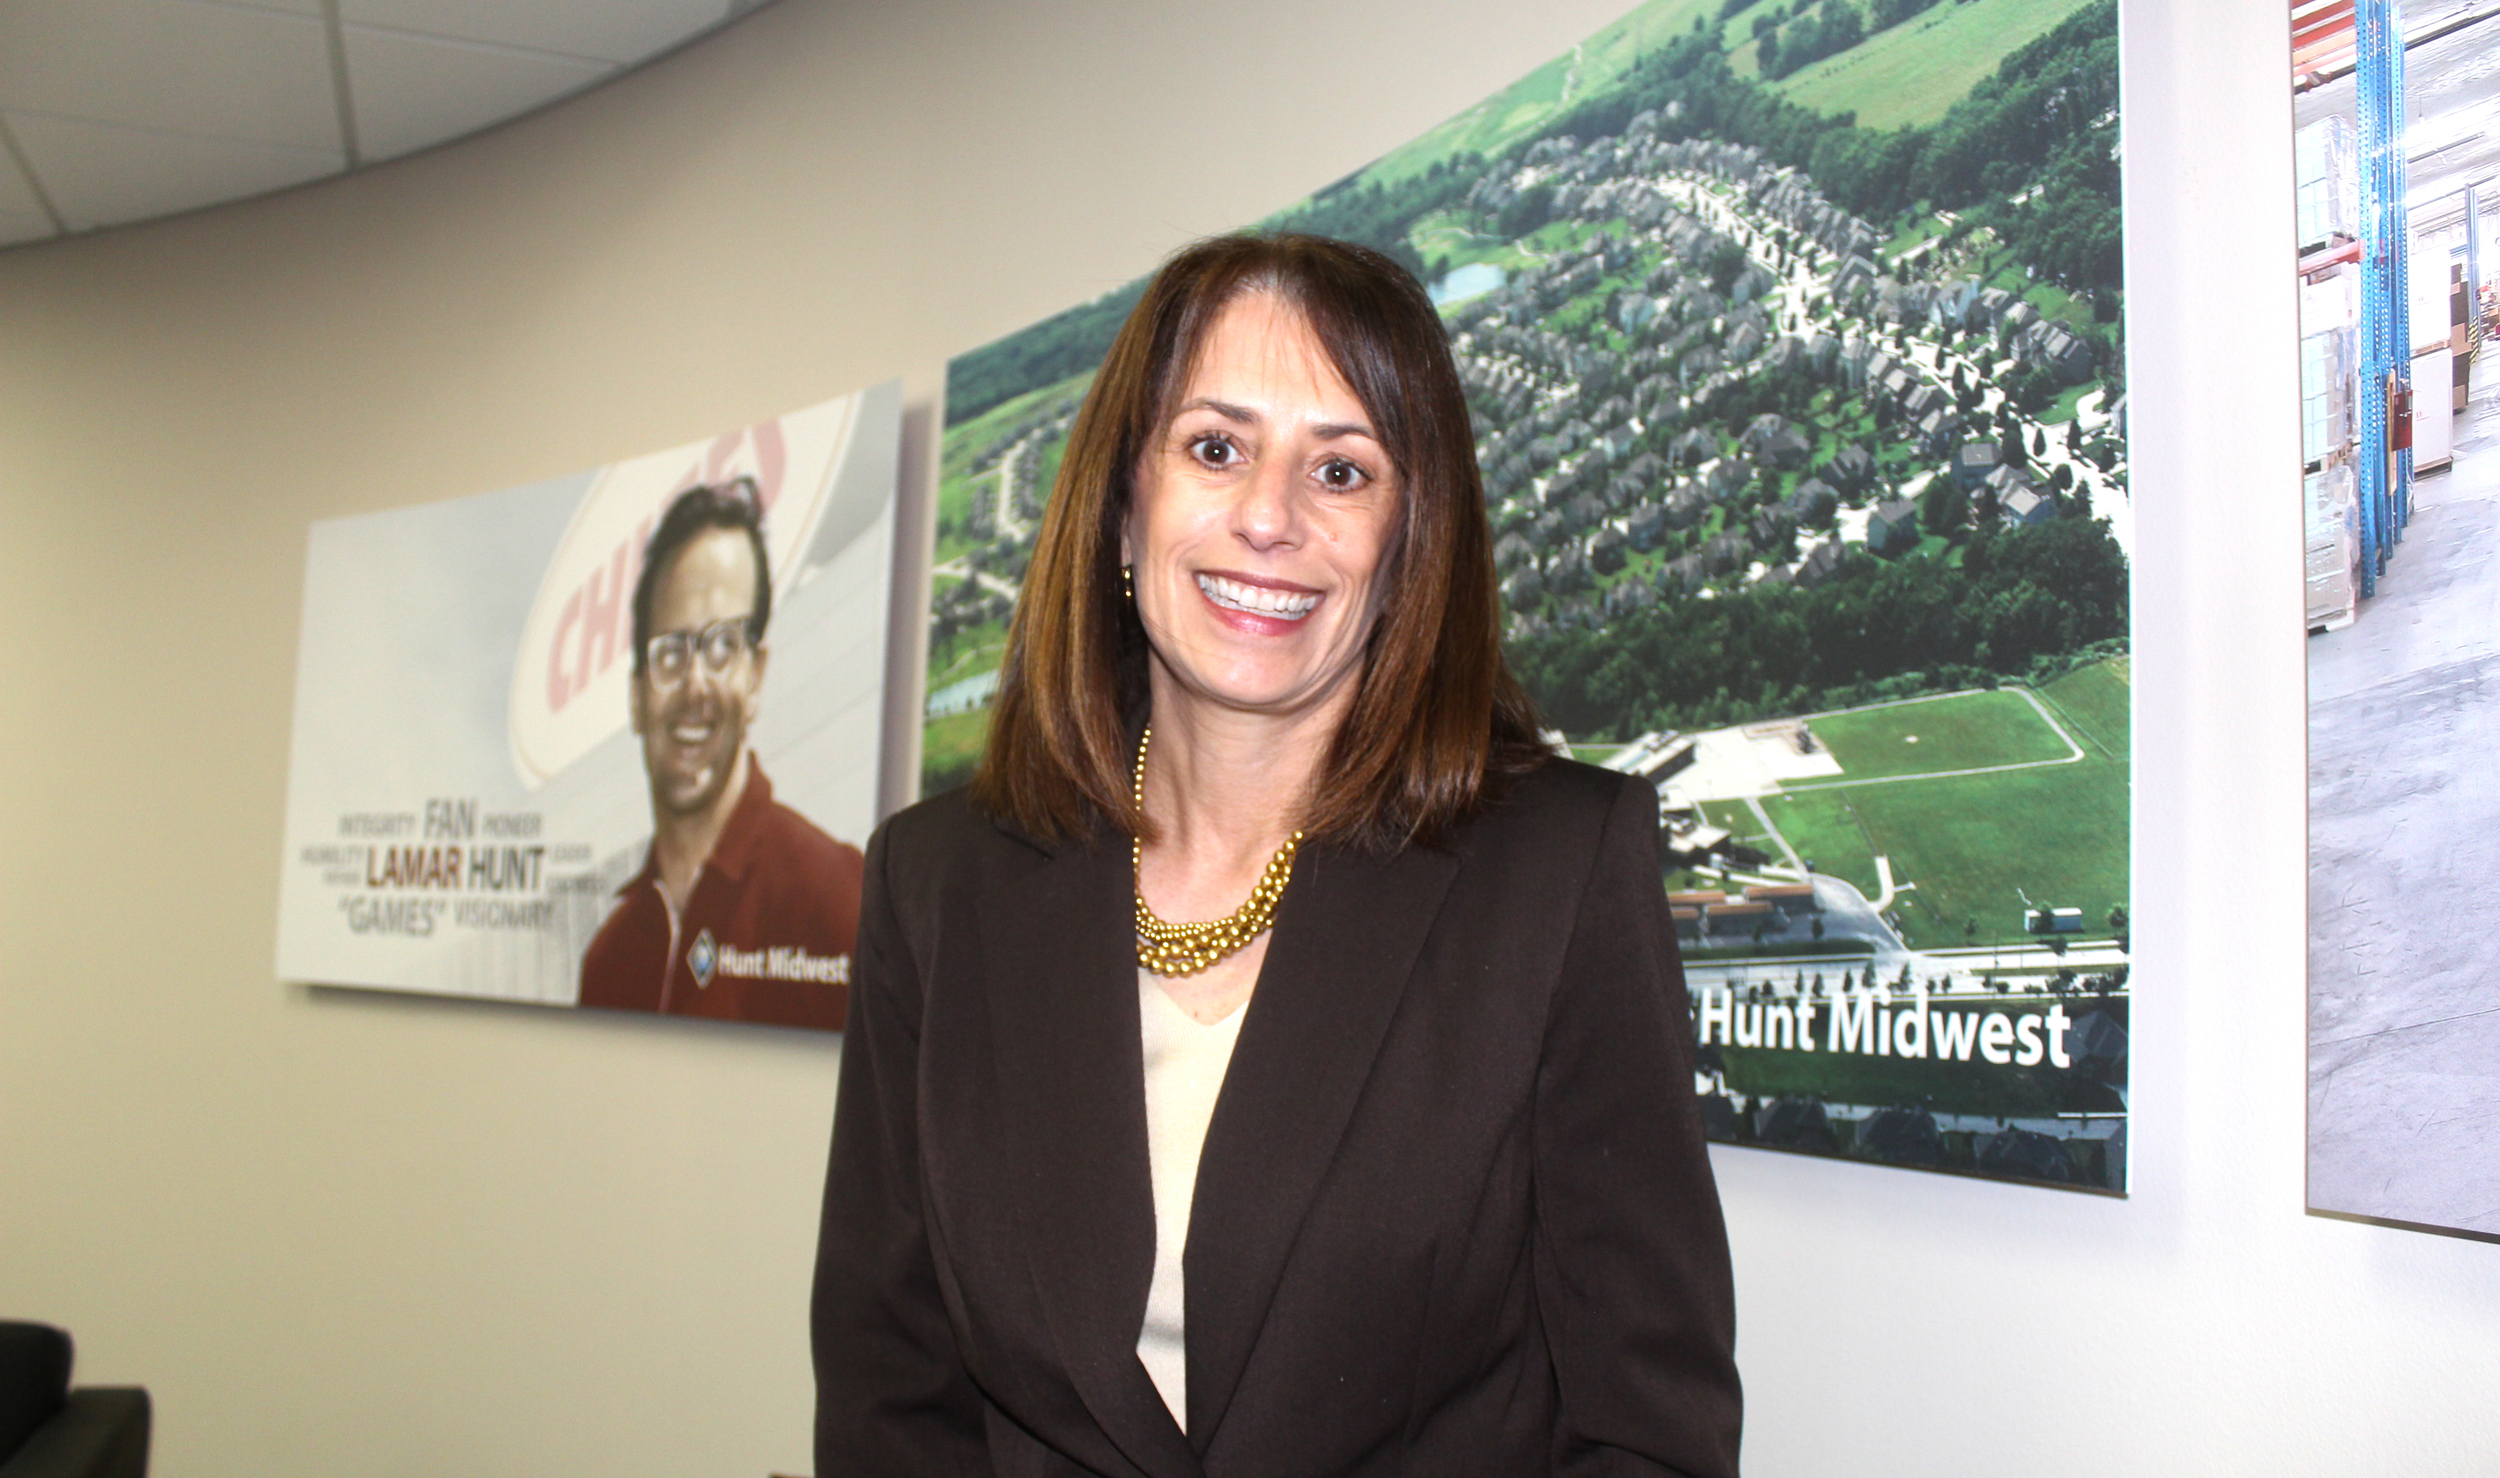 Ora Reynolds is president at Hunt Midwest.